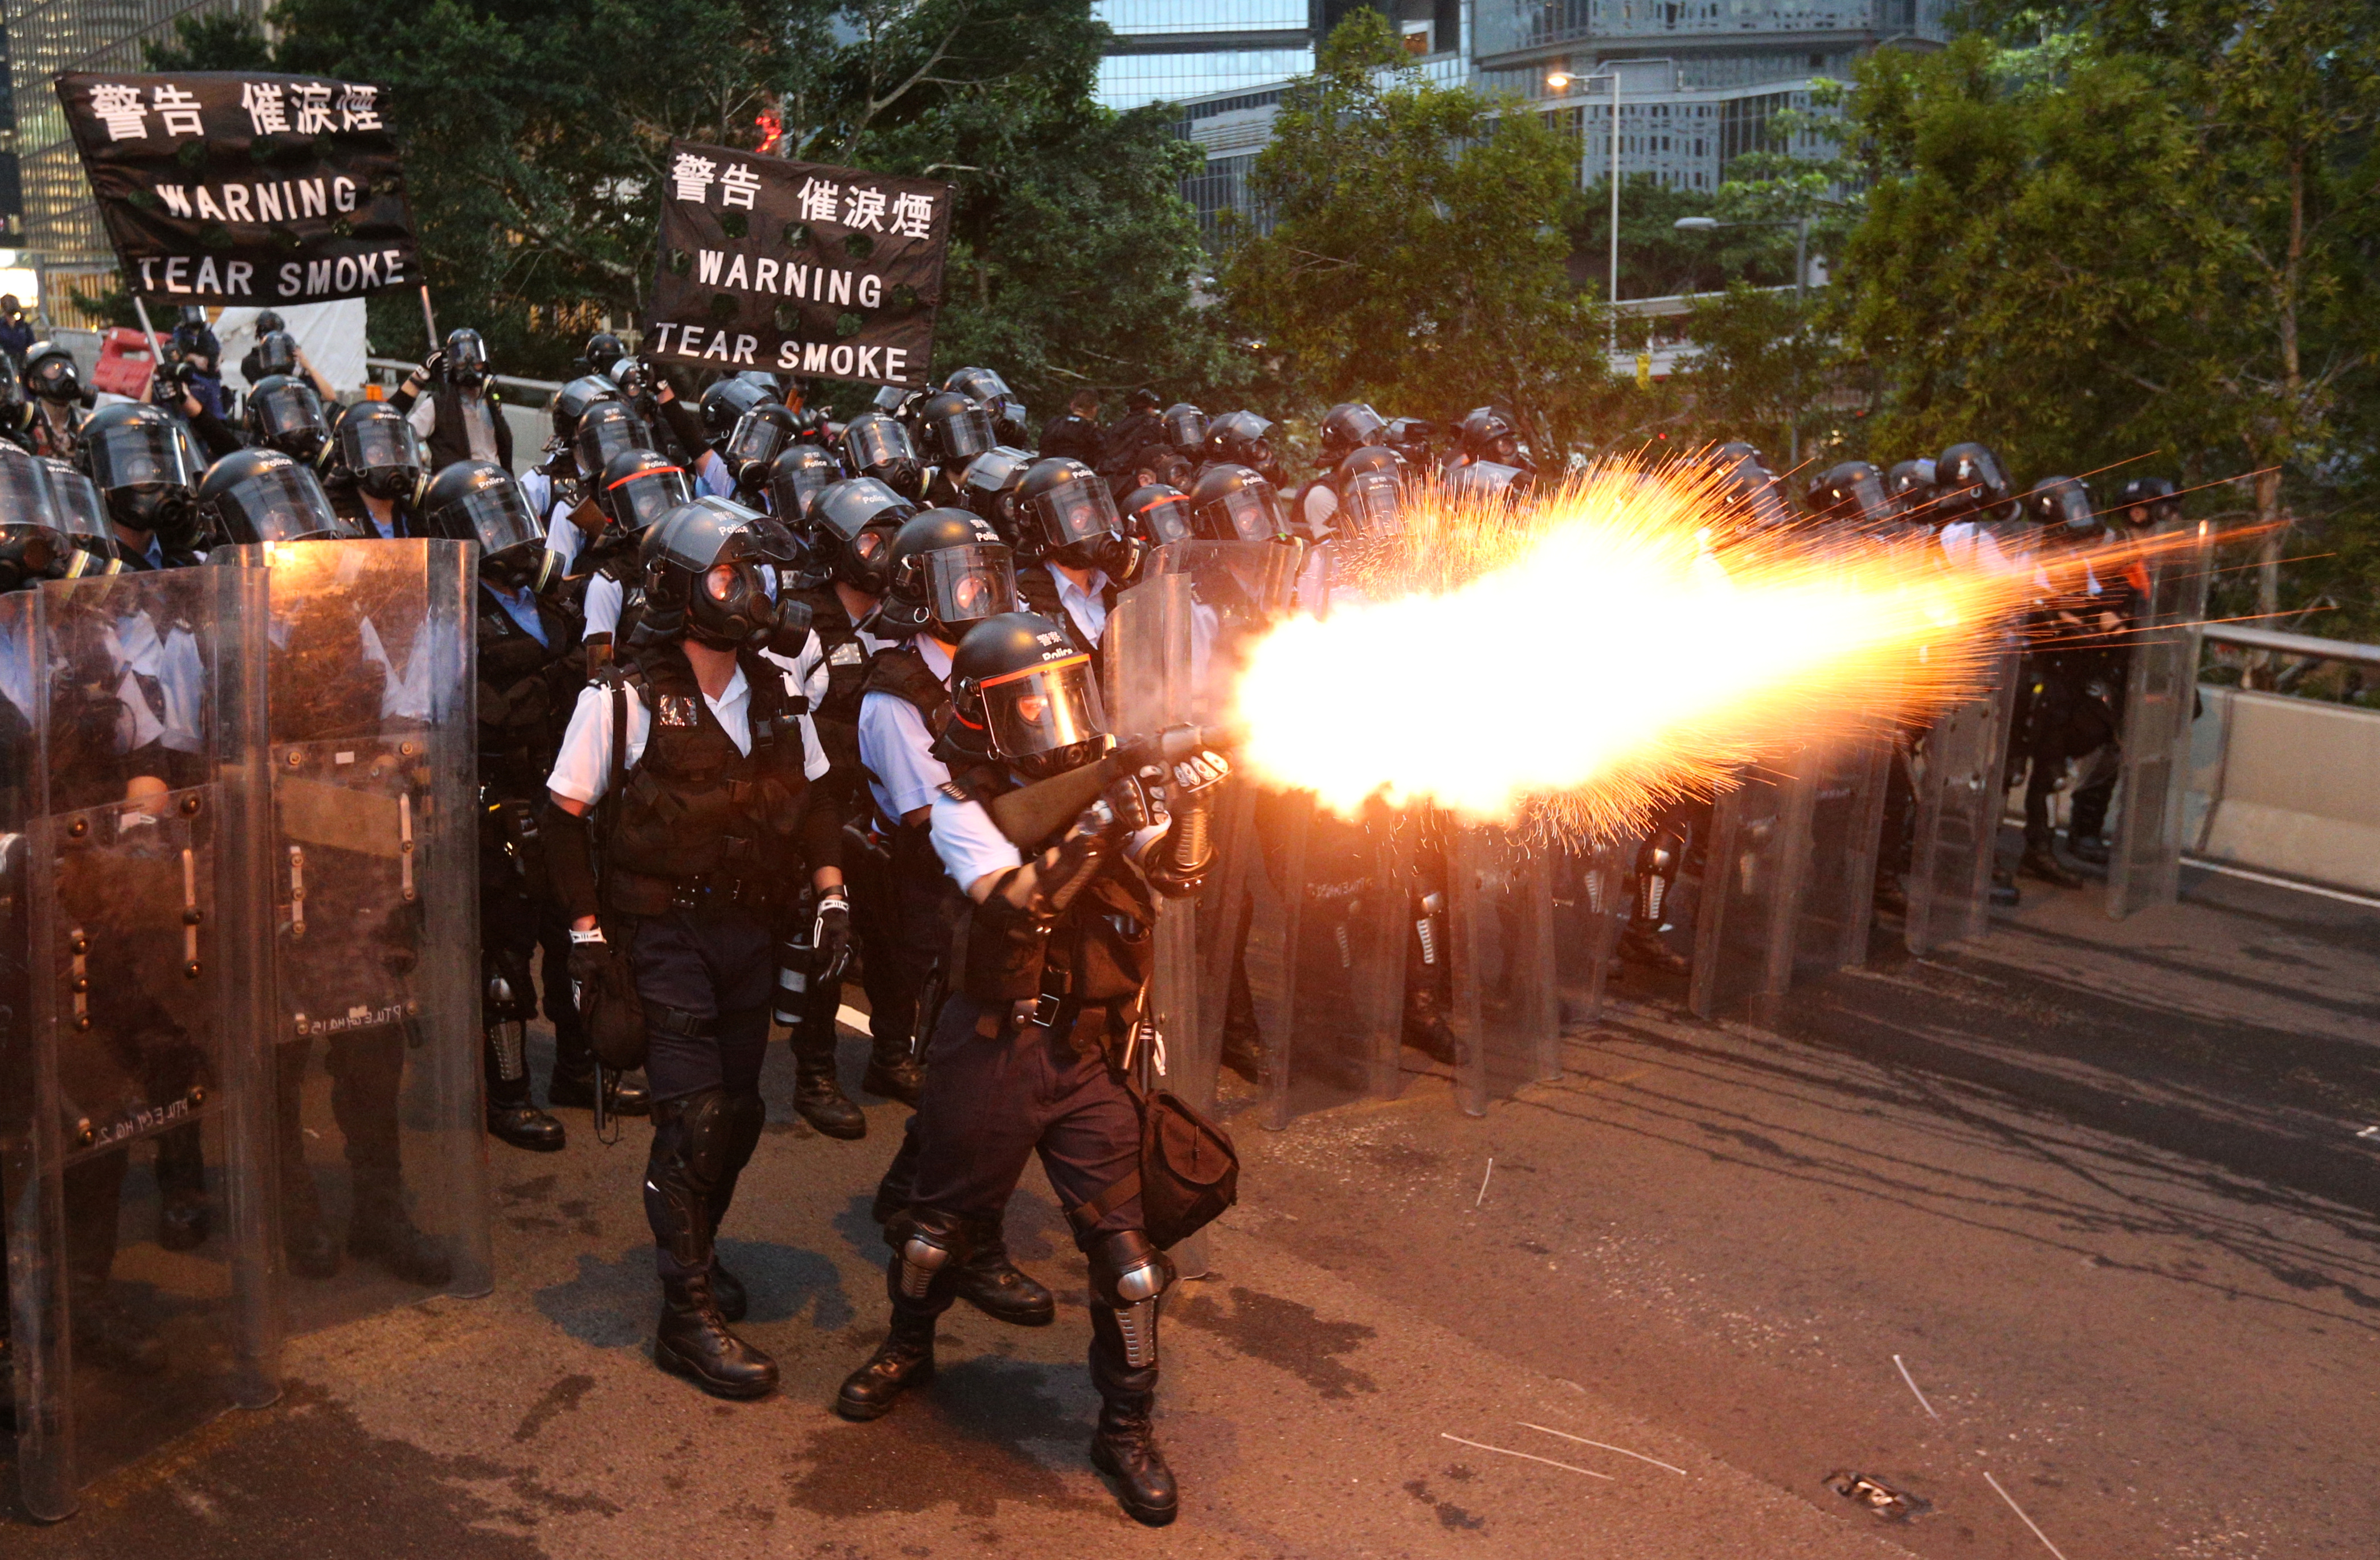 Police officers fire a tear gas during a demonstration against a proposed extradition bill in Hong Kong, June 12, 2019.